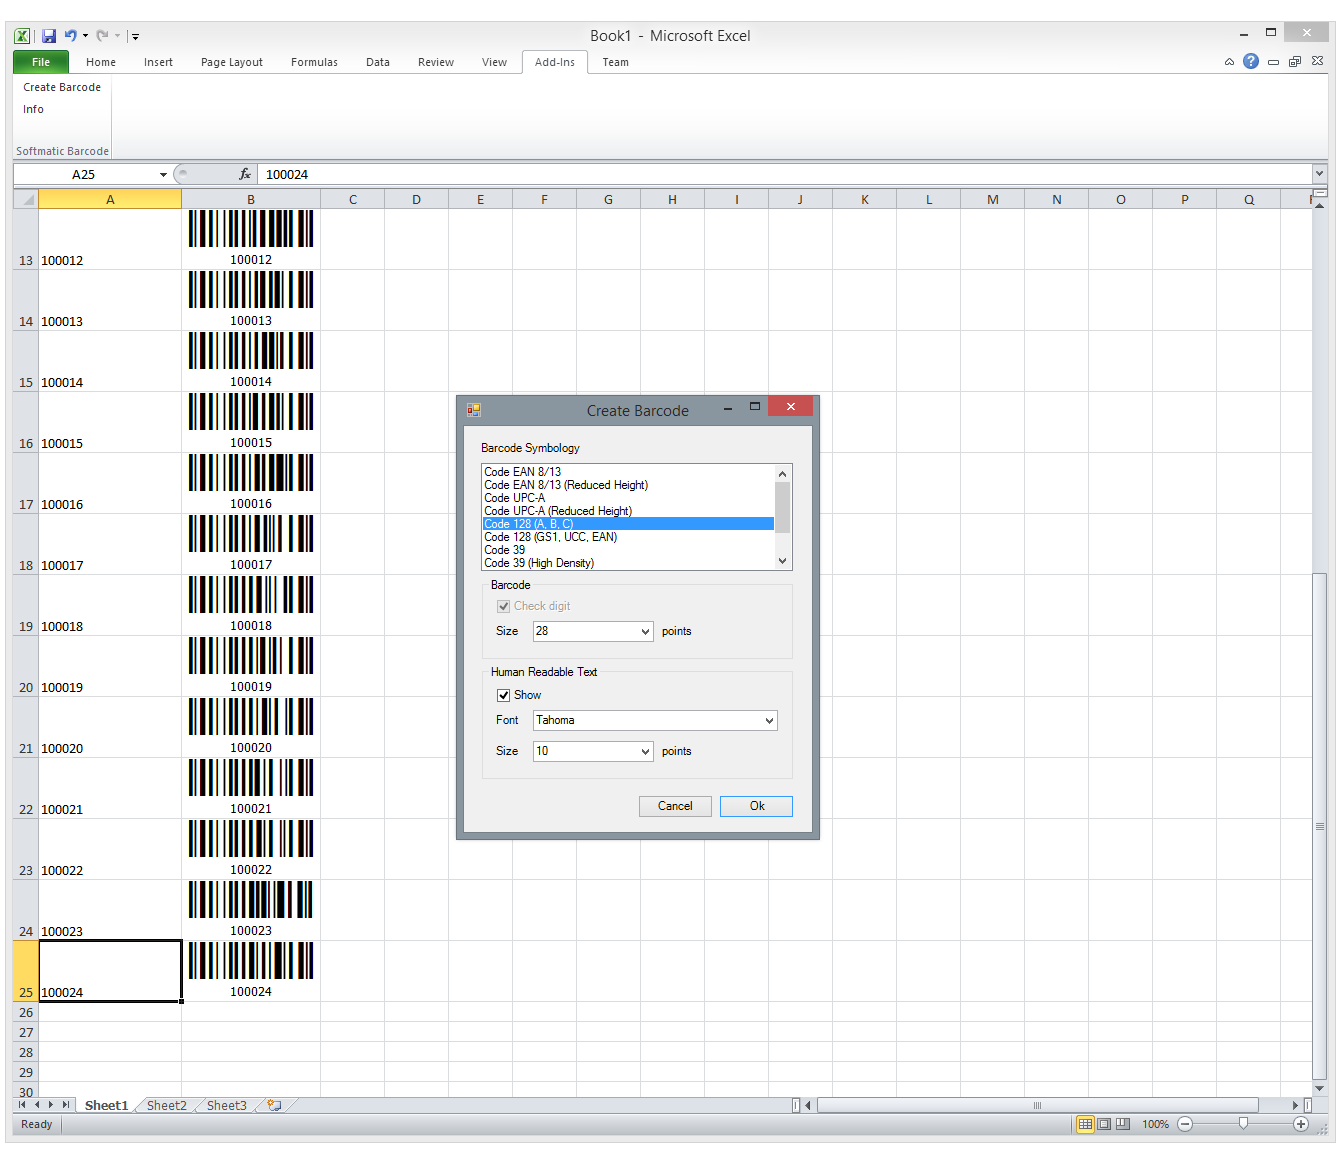 Create Barcodes in Excel with Barcode Fonts